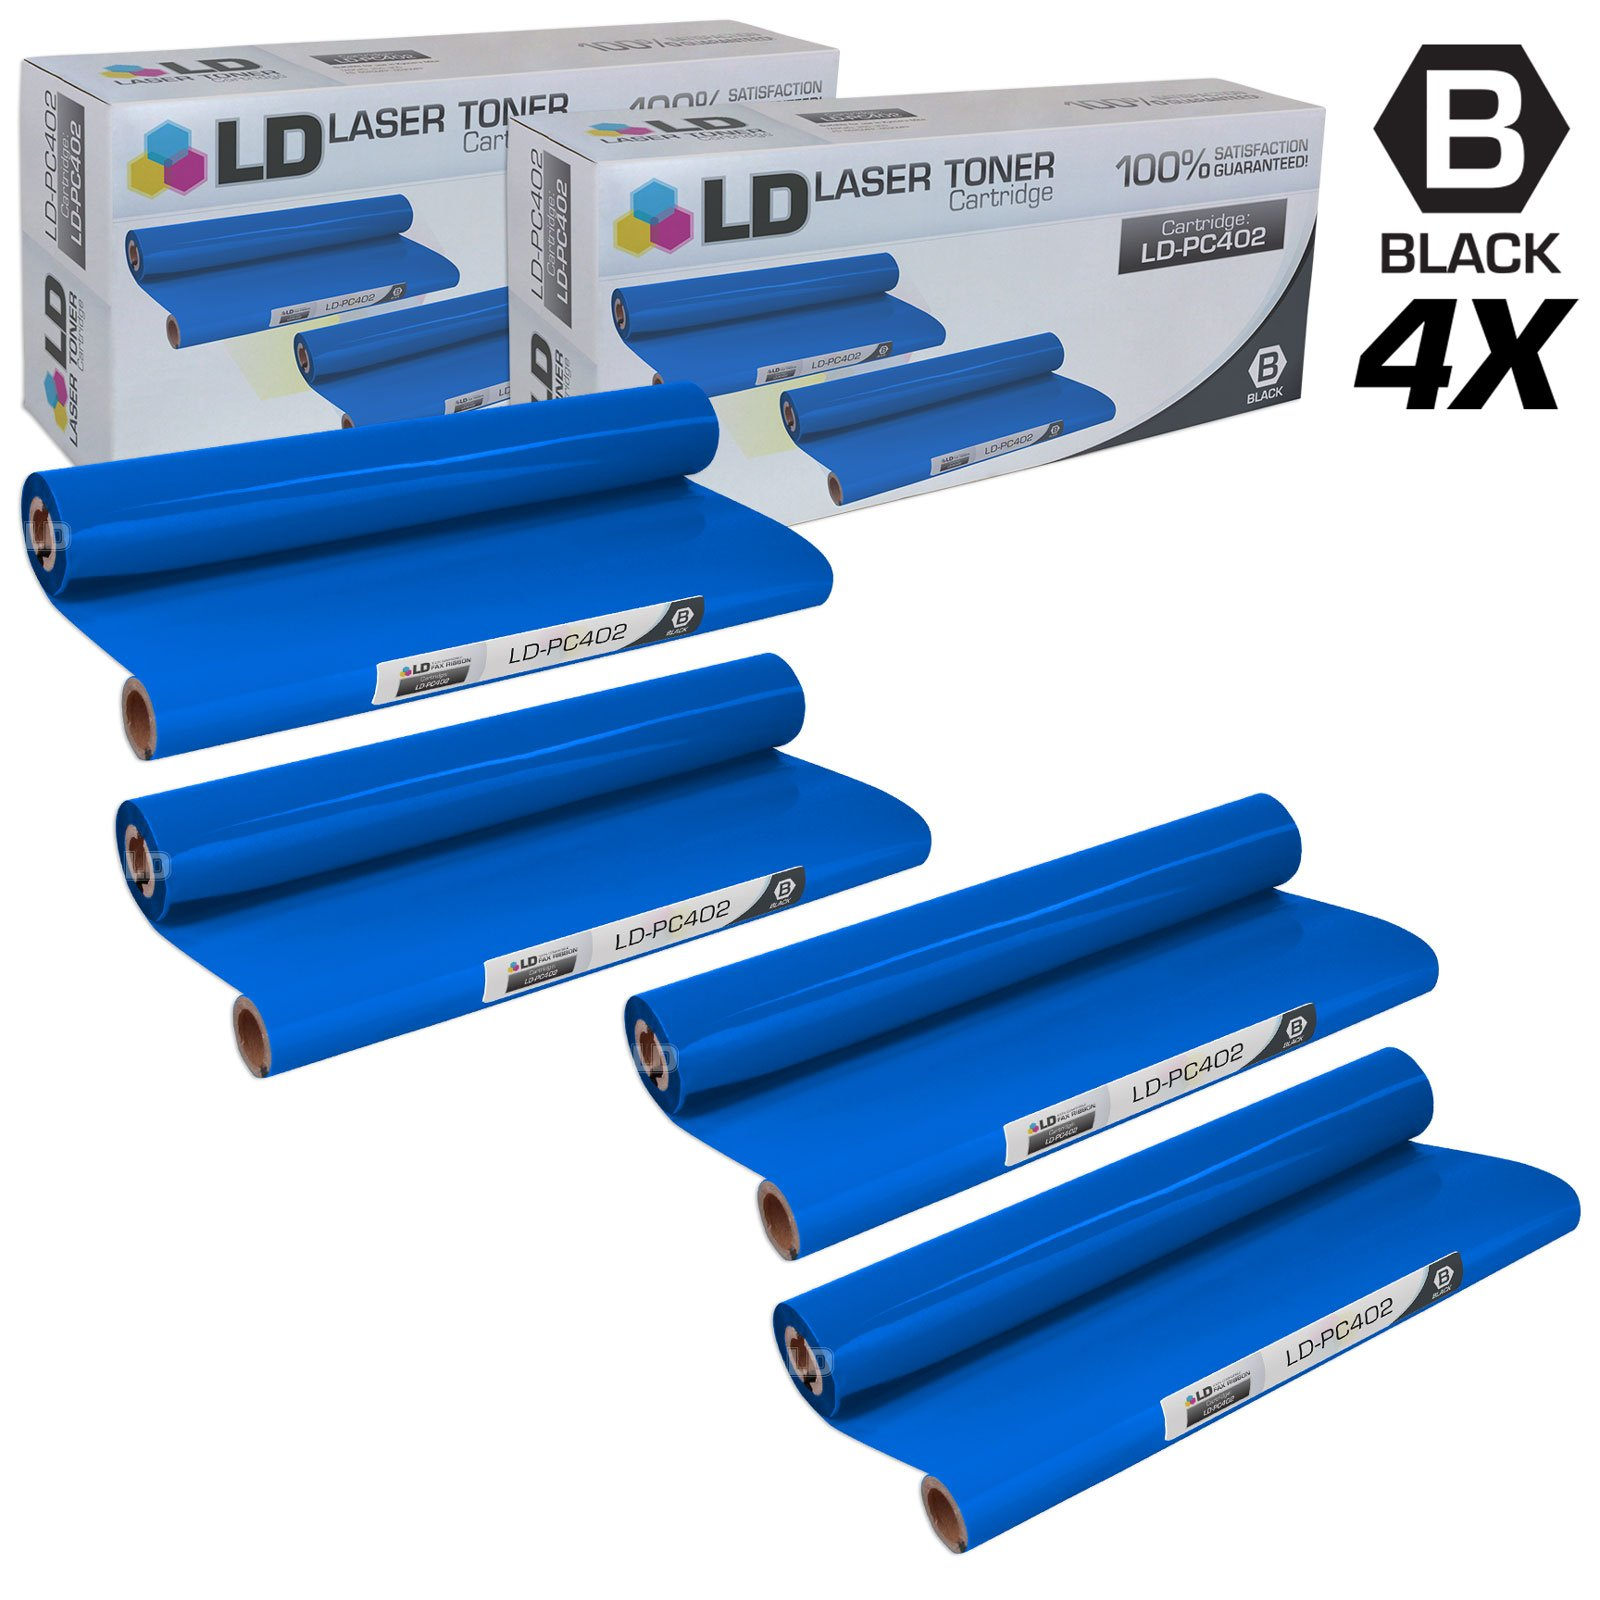 LD Compatible Replacements for Brother PC402 Set of 4 Thermal Fax Ribbon Refill Rolls for use in Brother FAX 560, FAX 575, FAX 580MC, Intellifax 560, 565, 580MC, and MFC-660MC Printers